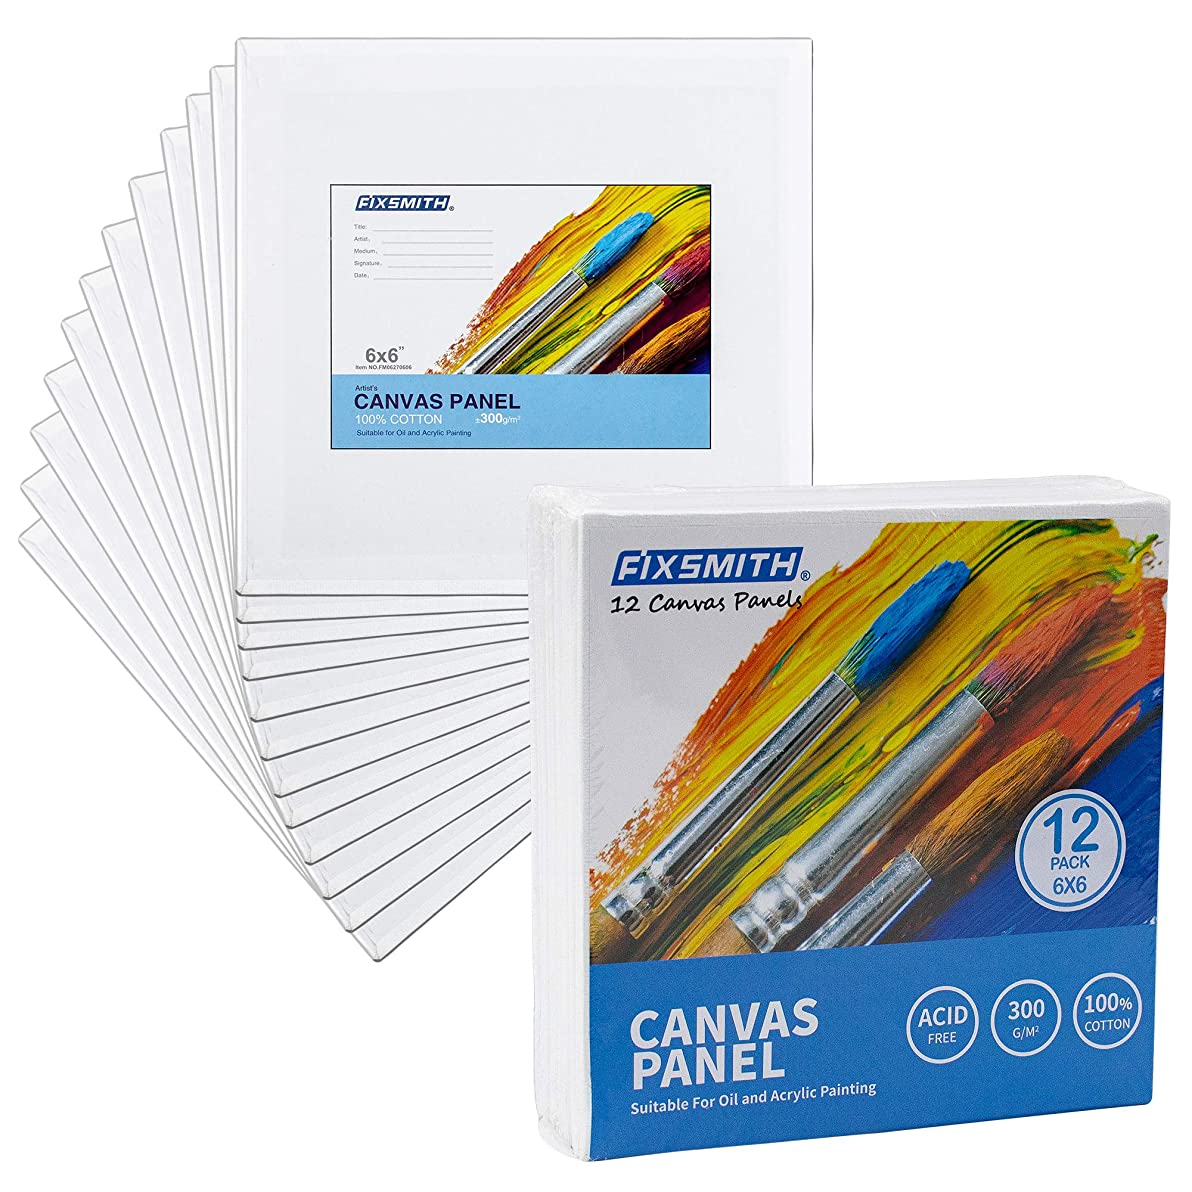 FIXSMITH Painting Canvas Panels - 6 x6 Inch Canvas Panel Super Value 12 Pack Canvases,100% Cotton,Square Canvas Board,Mini Canvas,Artist Canvas Boards for Professionals,Hobby Painters,Students & Kids.